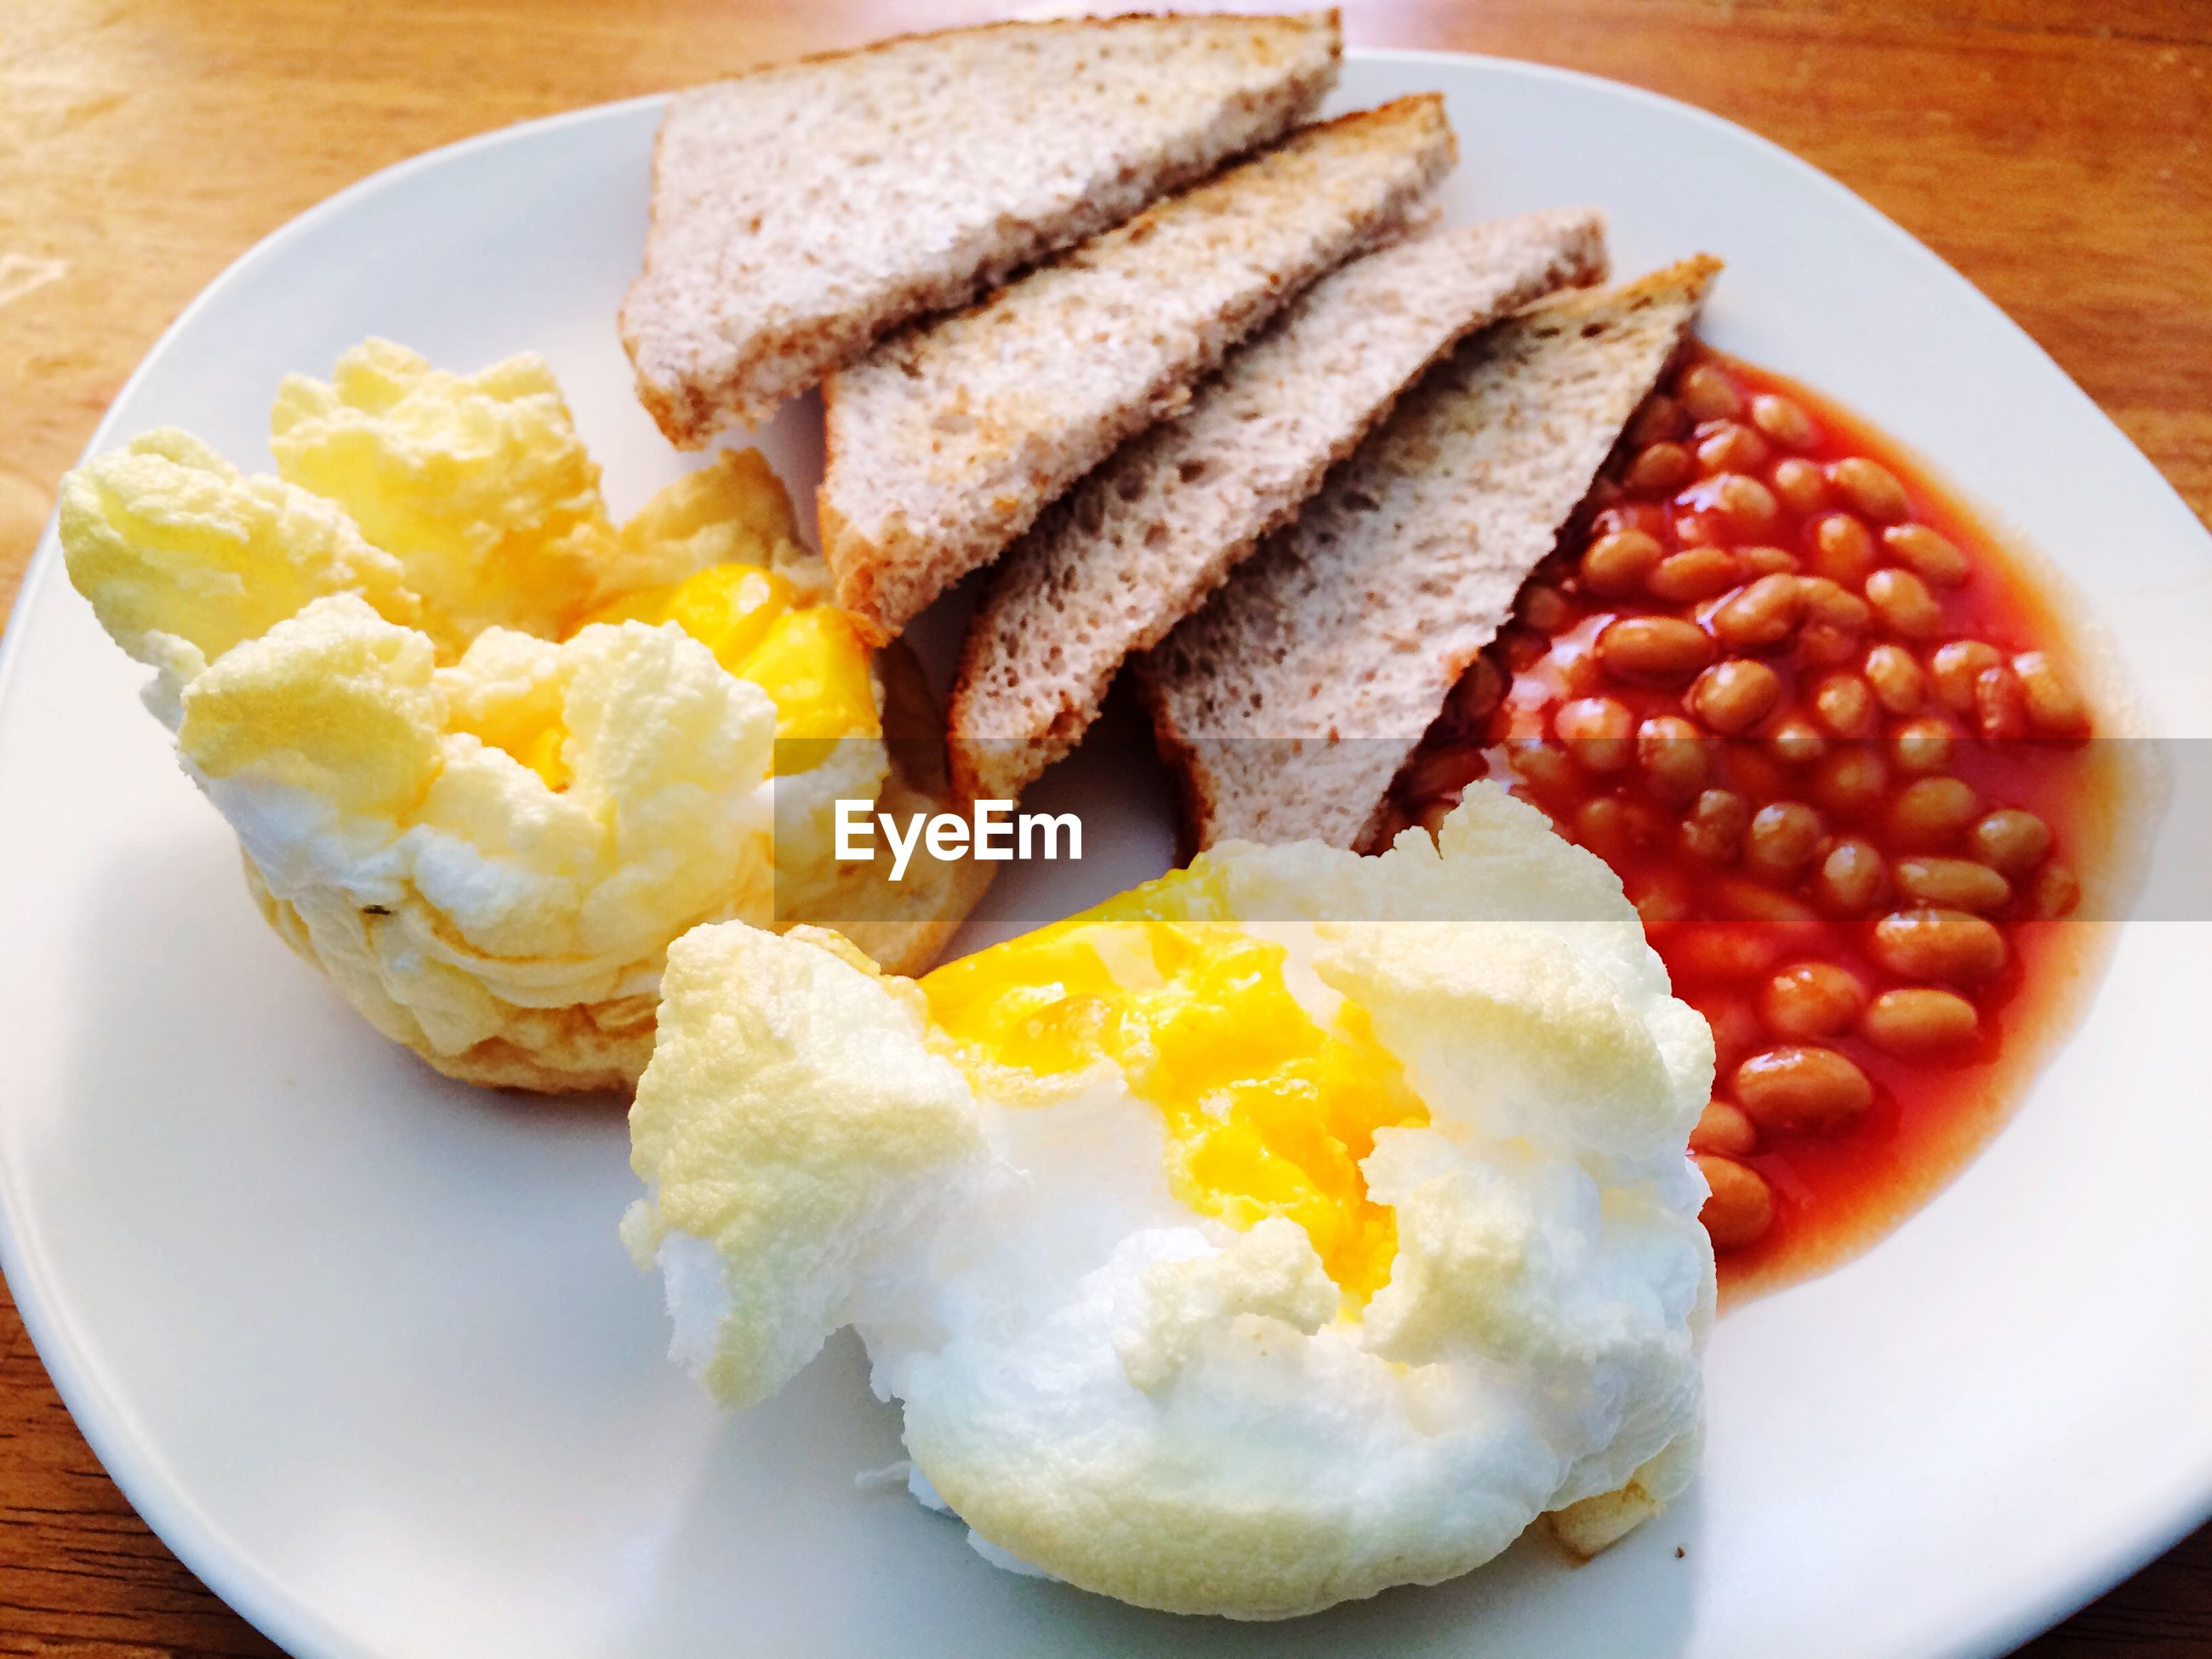 Mashed eggs with bread on plate